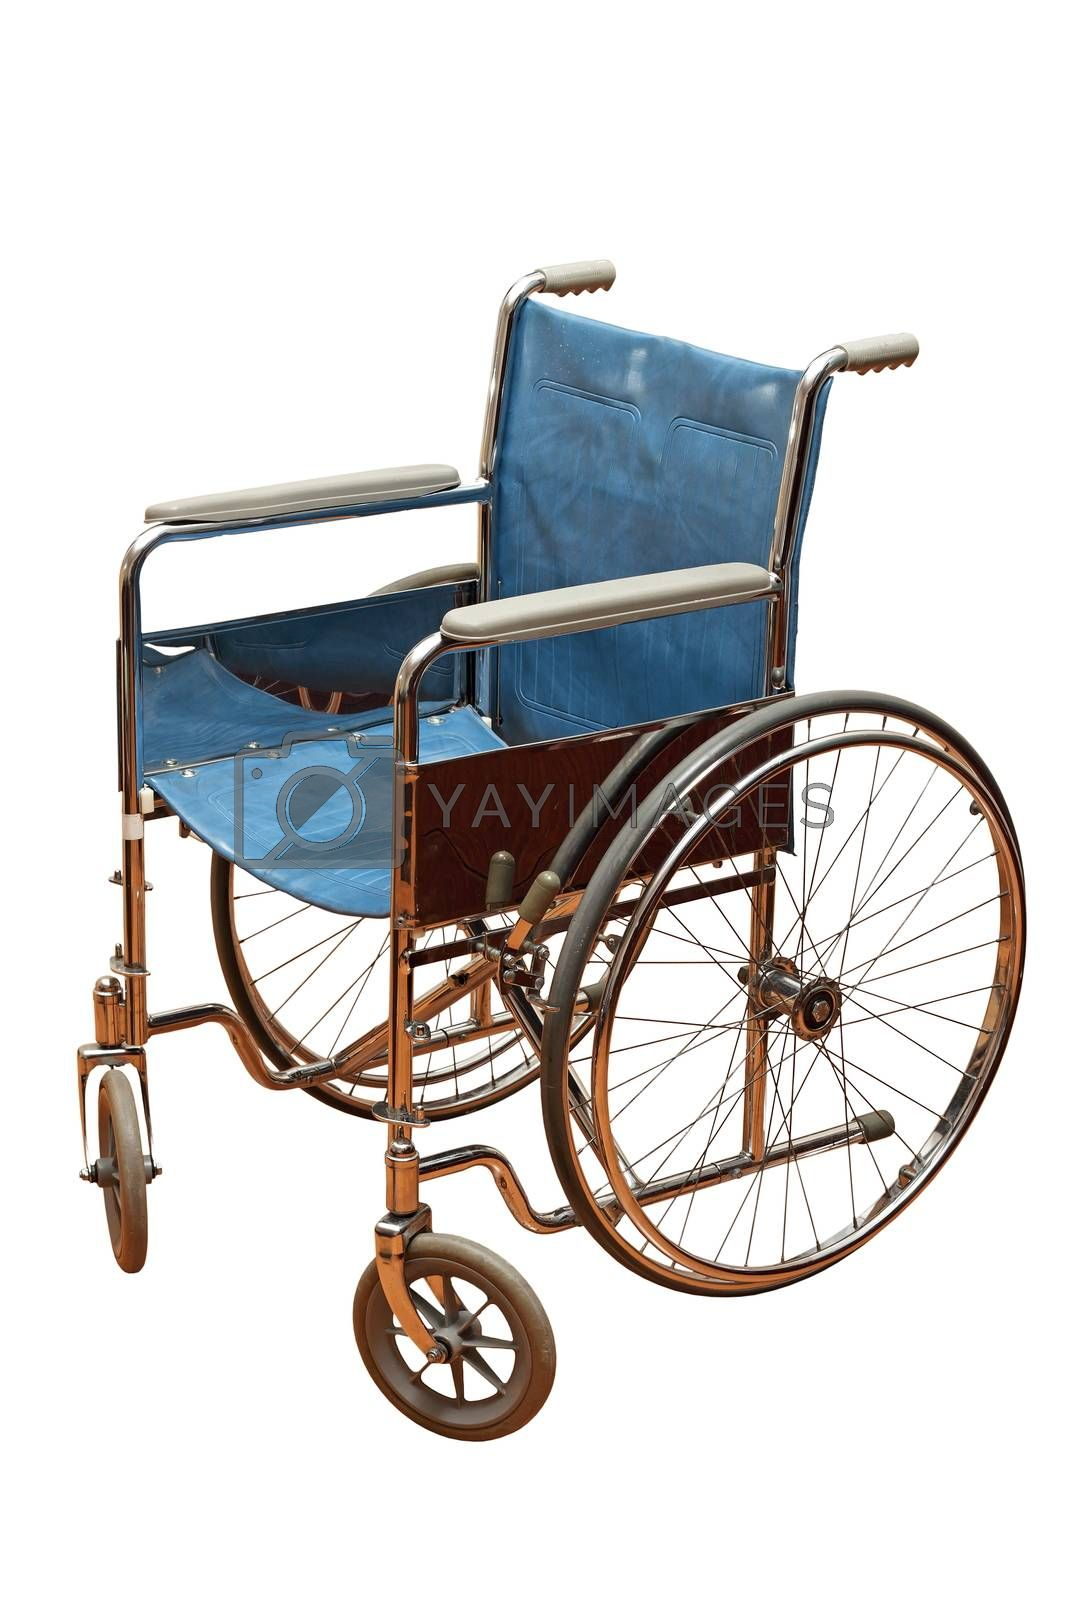 Royalty free image of old wheel chair by taviphoto